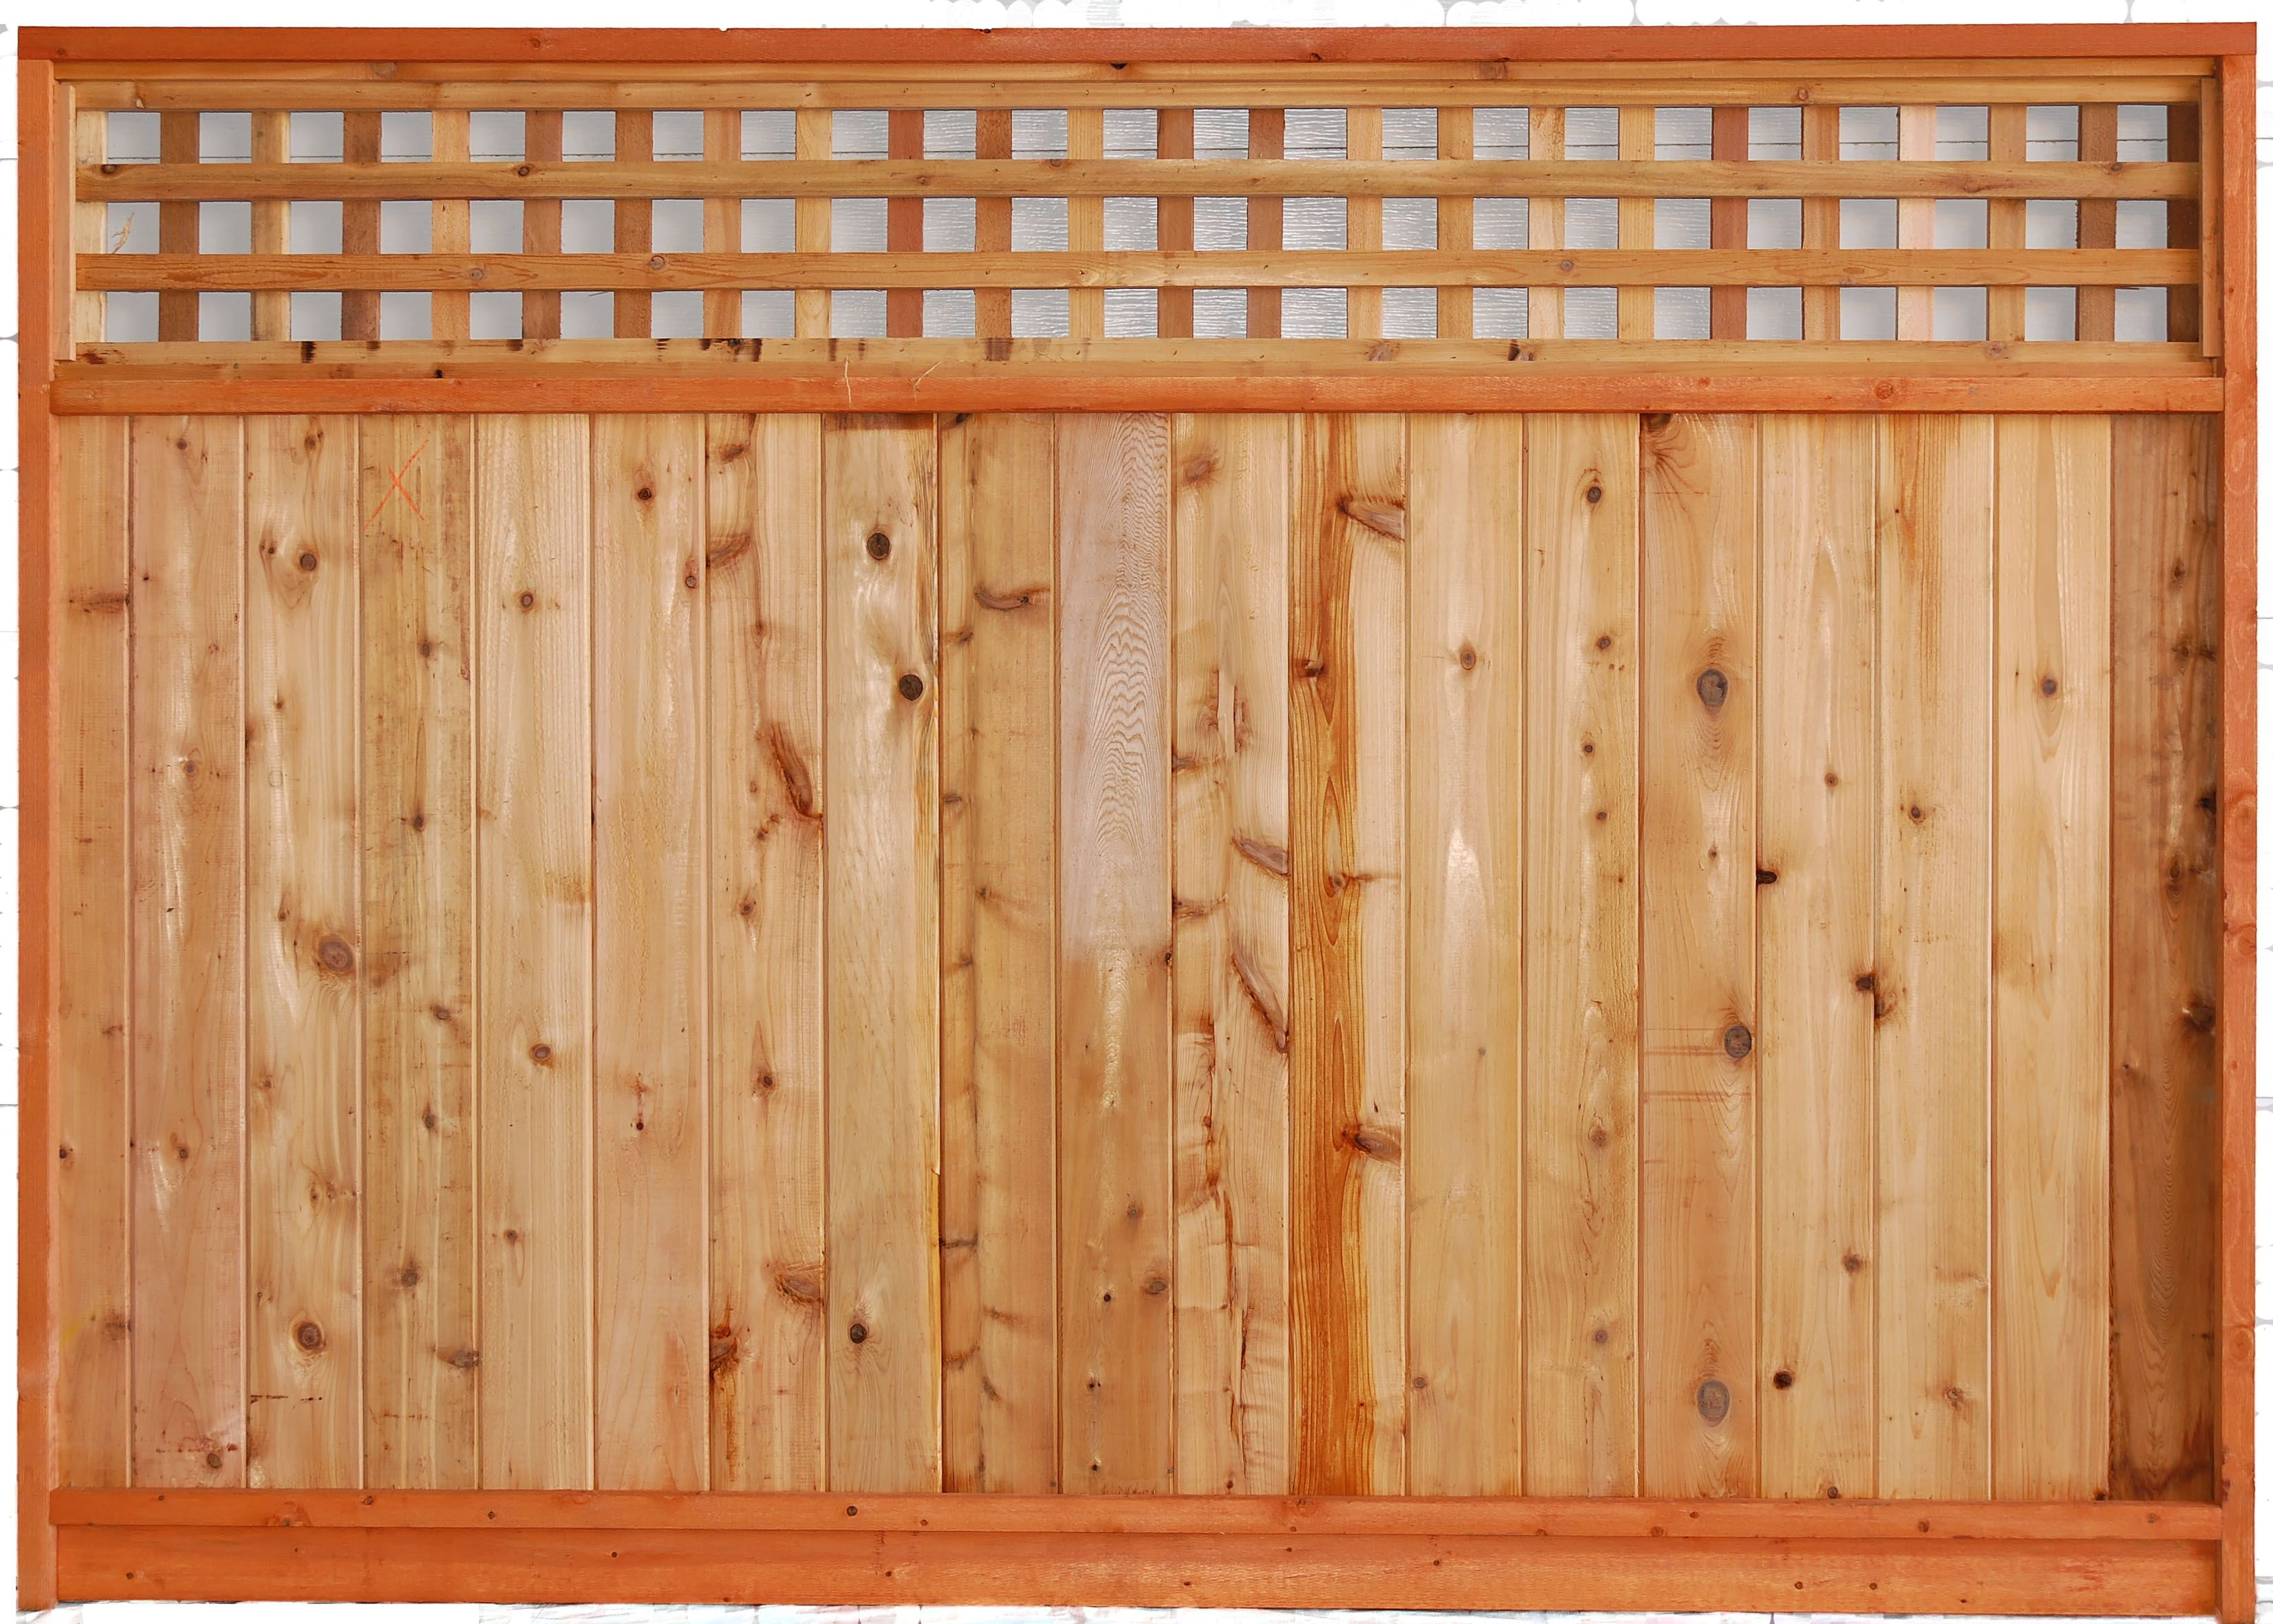 Aim cedar works ltd quality fence panels decks and renovations aim cedar works ltd quality fence panels decks and renovations baanklon Images